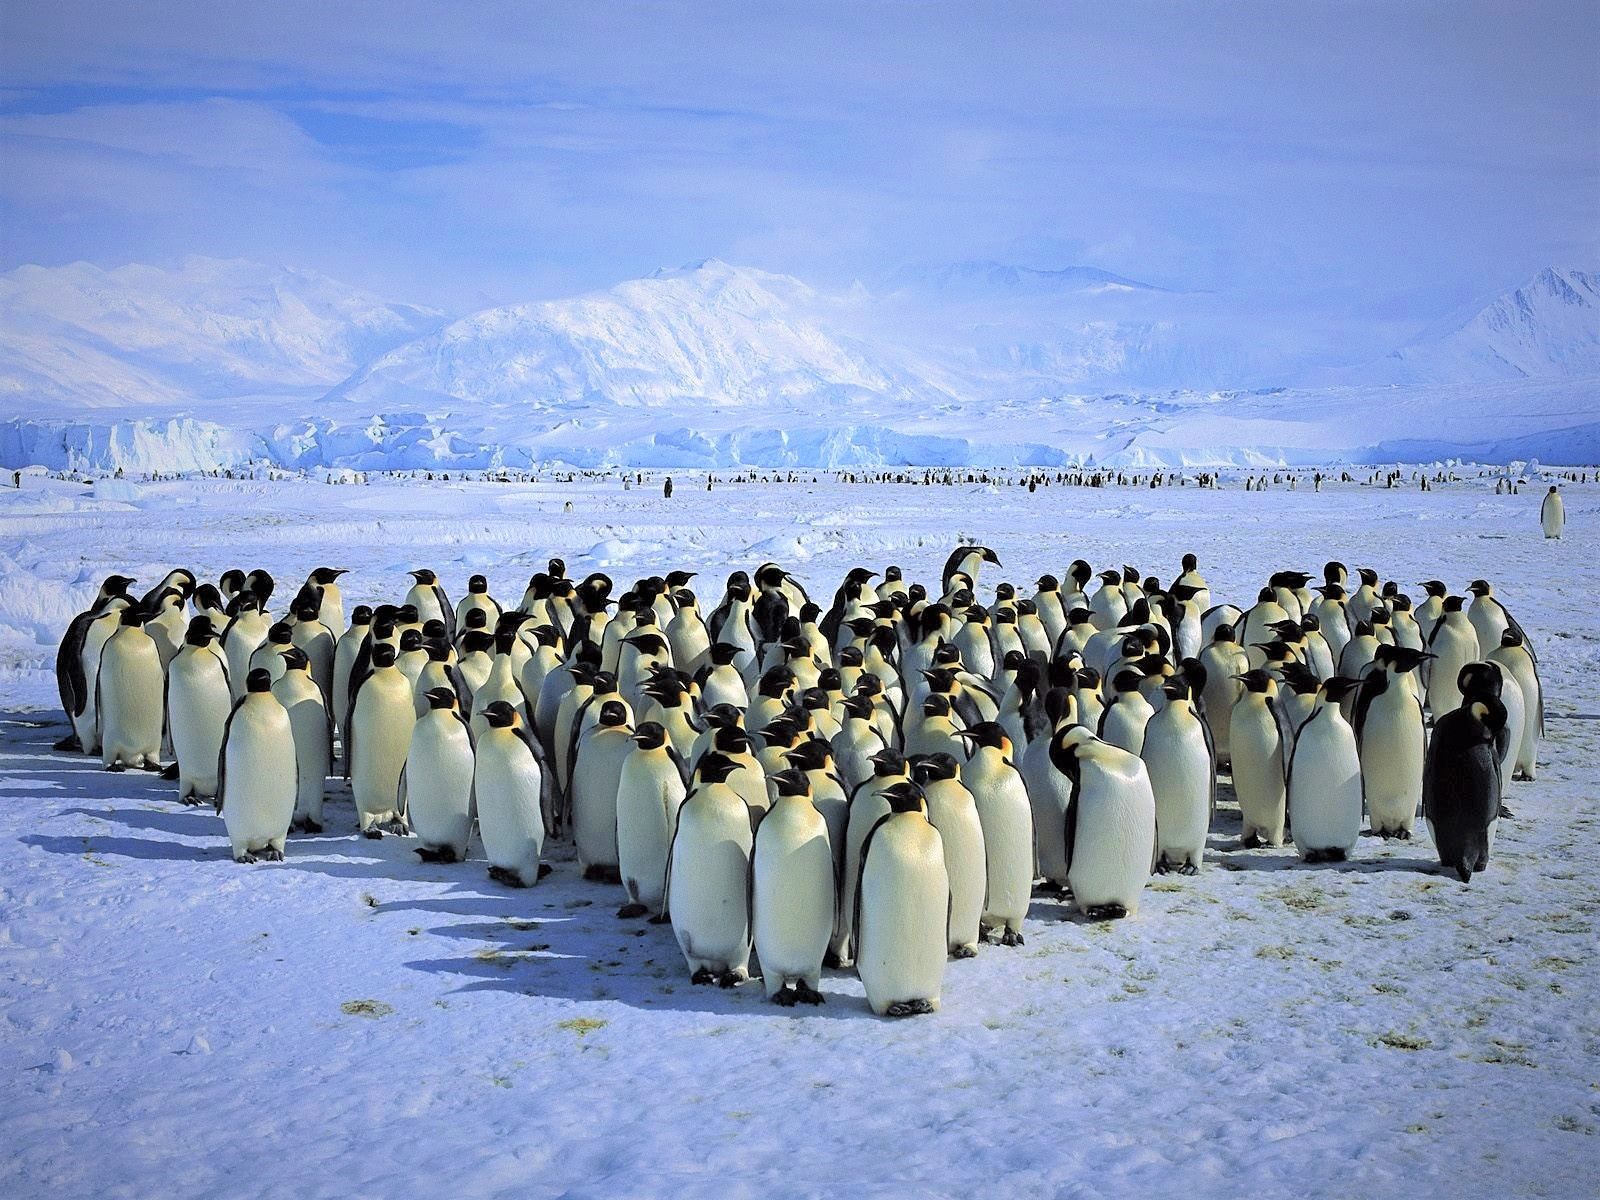 King Penguins in Antarctica Wallpaper and Background Image 1600x1200